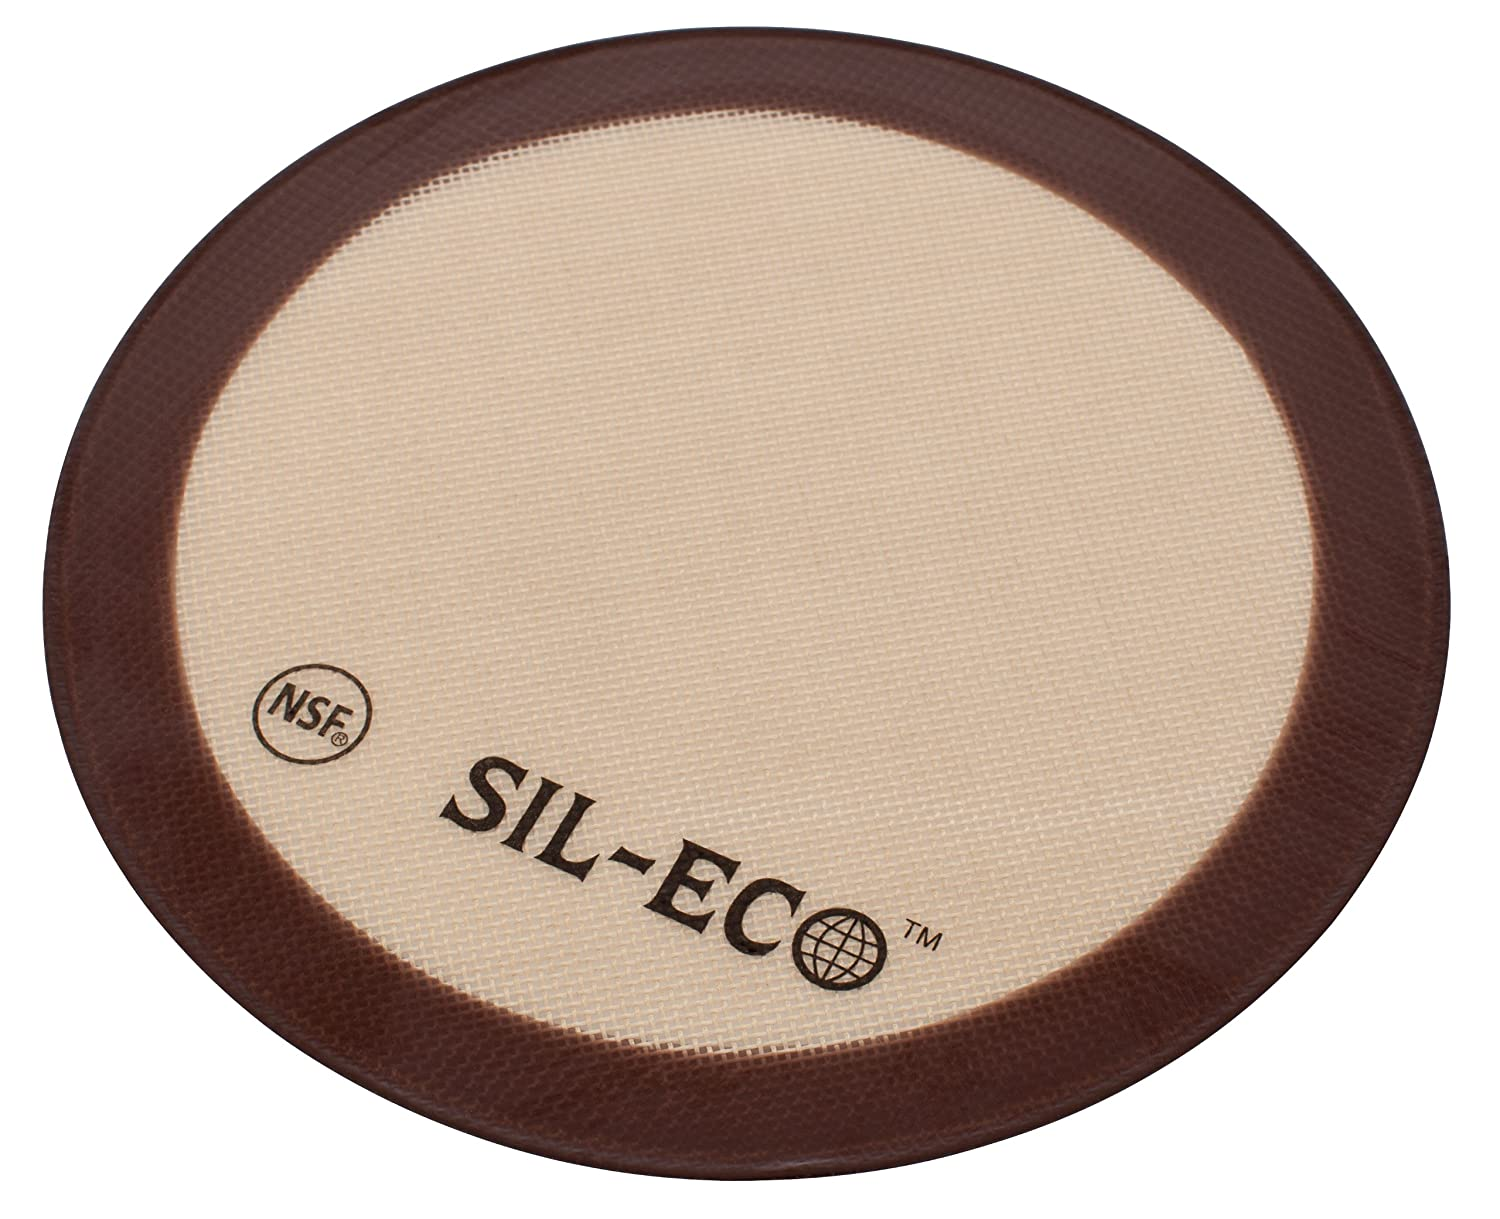 Amazon.com : Sil-EcoNon-Stick Silicone Baking Liner Great baking liner – we put this on the tray that came with our convection oven to bake cookies, tofu, etc.